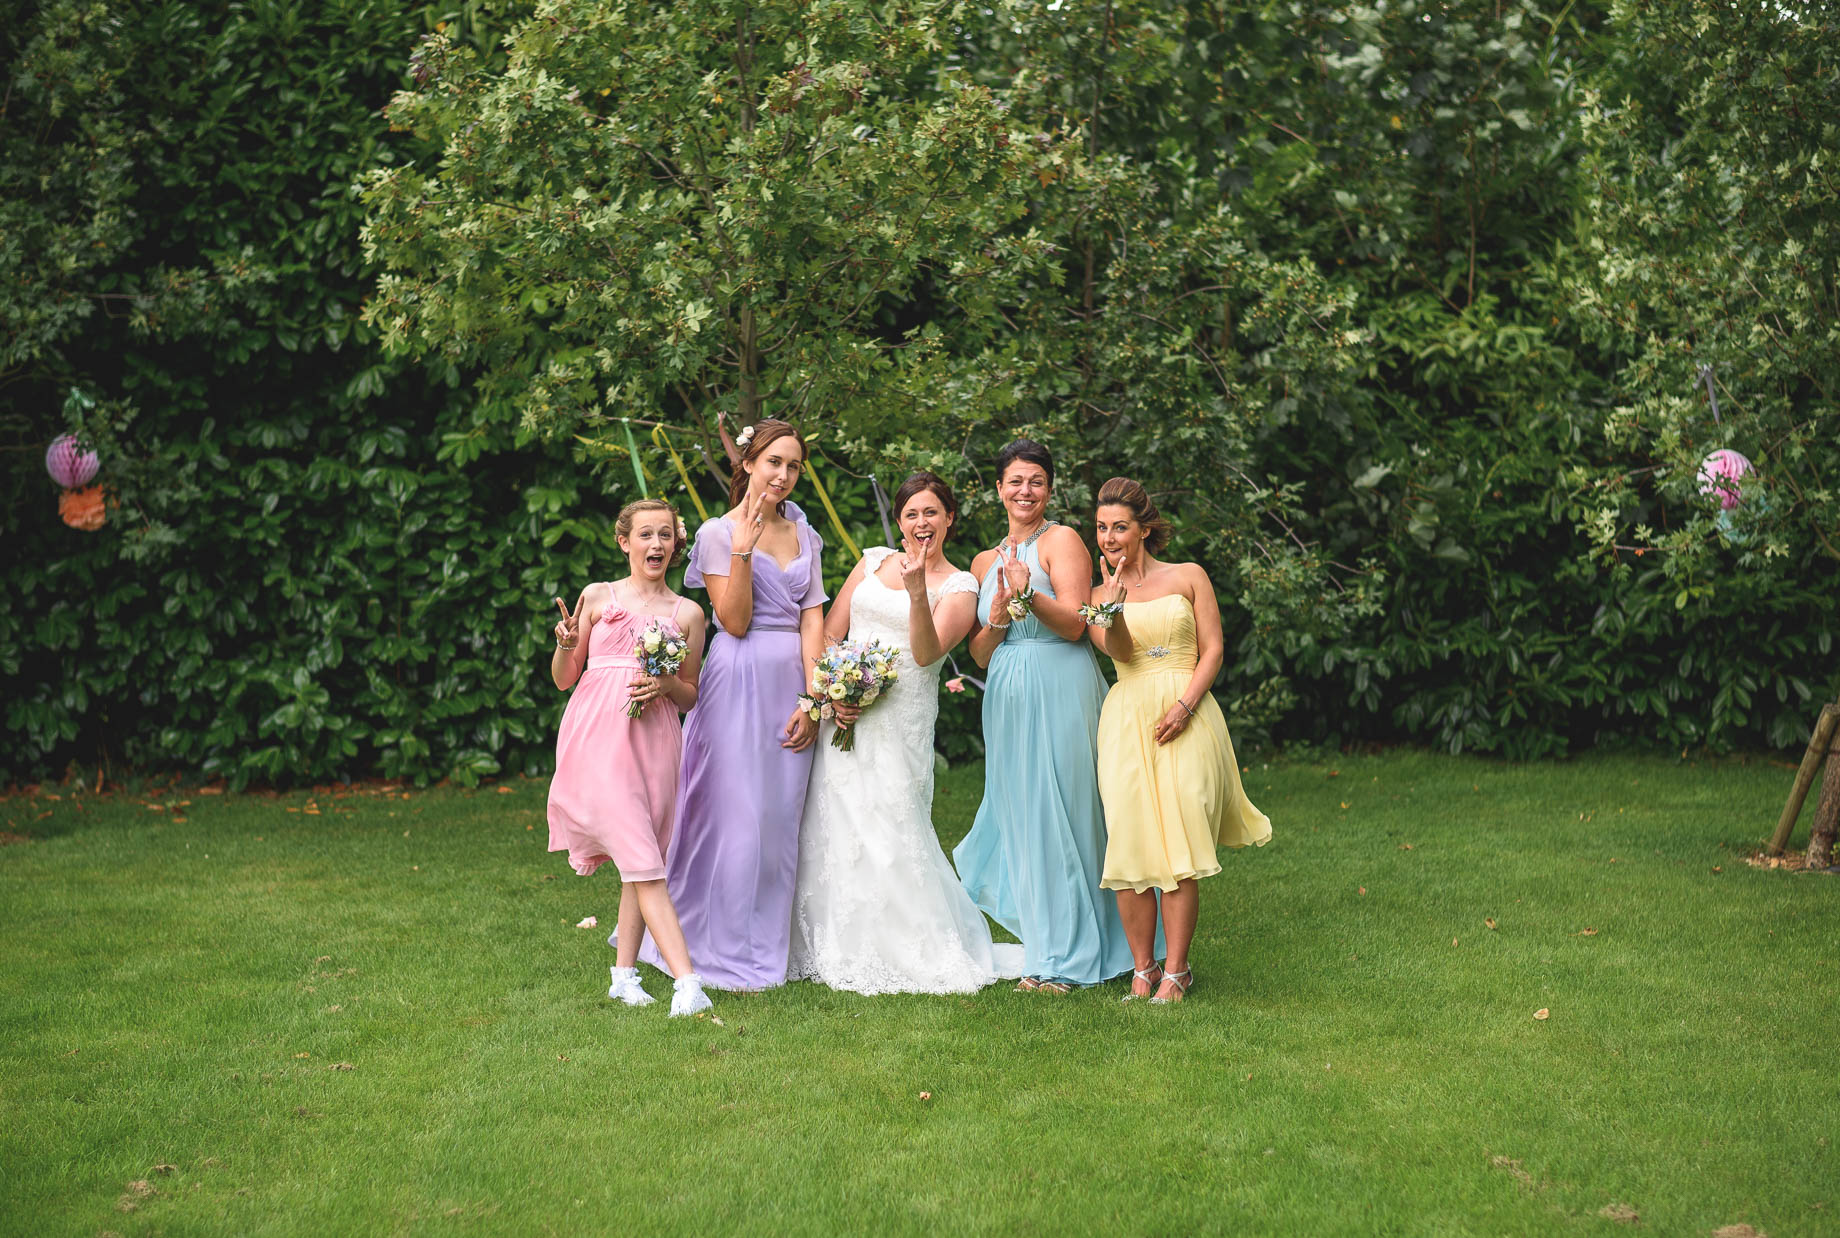 Luton Hoo wedding photography by Guy Collier Photography - Lauren and Gem (120 of 178)